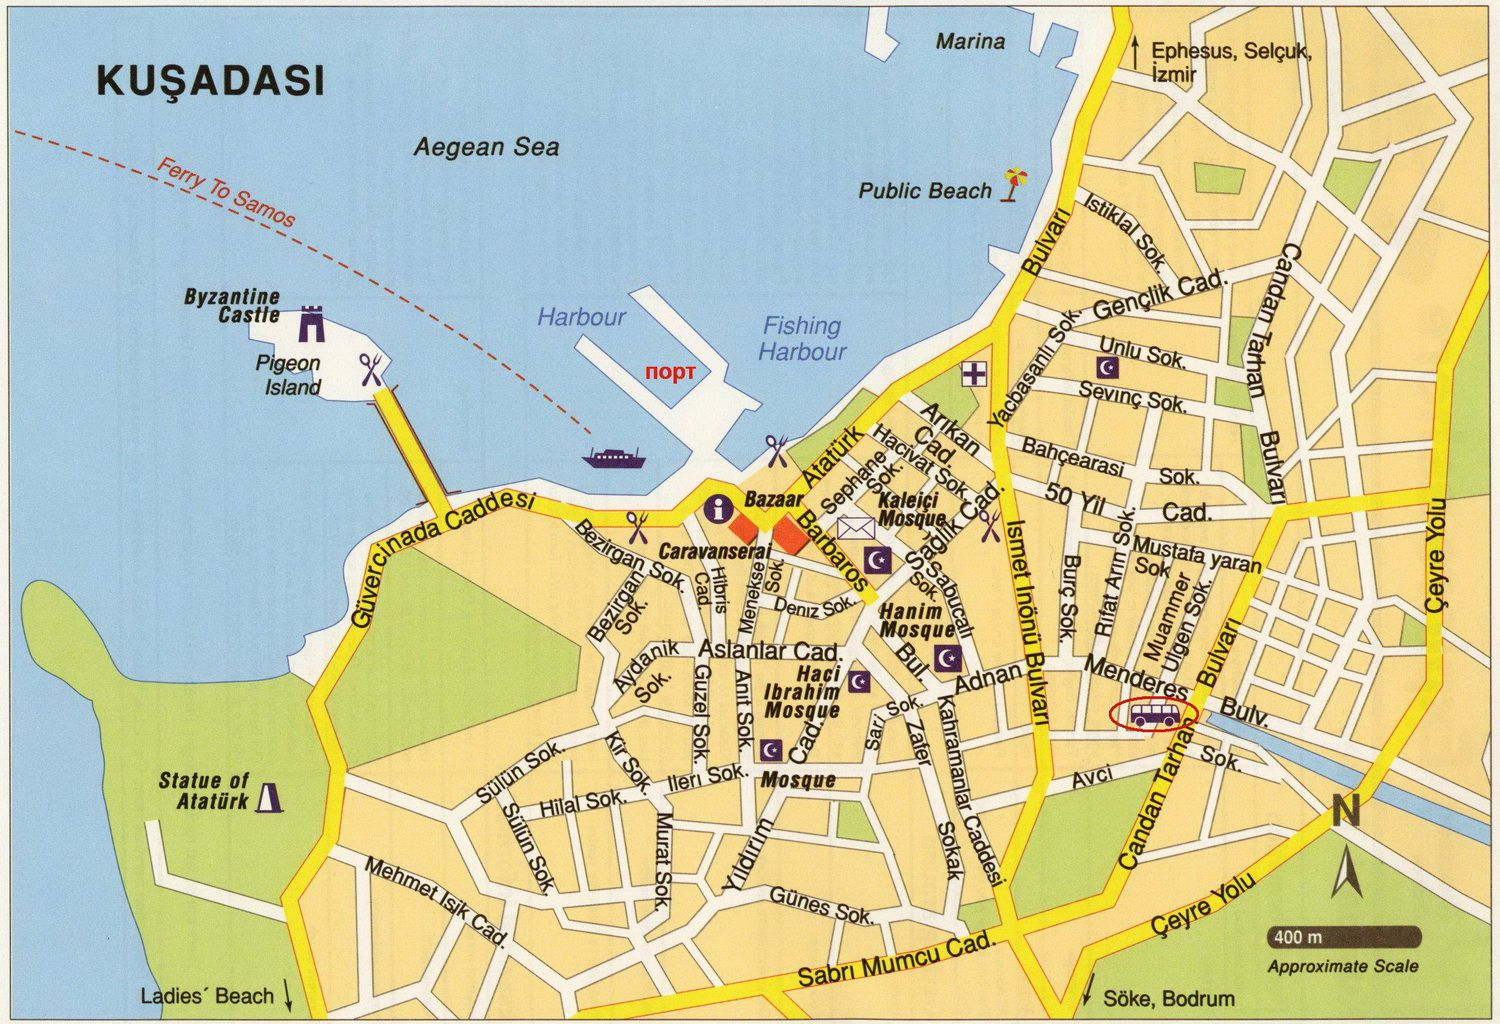 large kusadasi maps for free download and print high